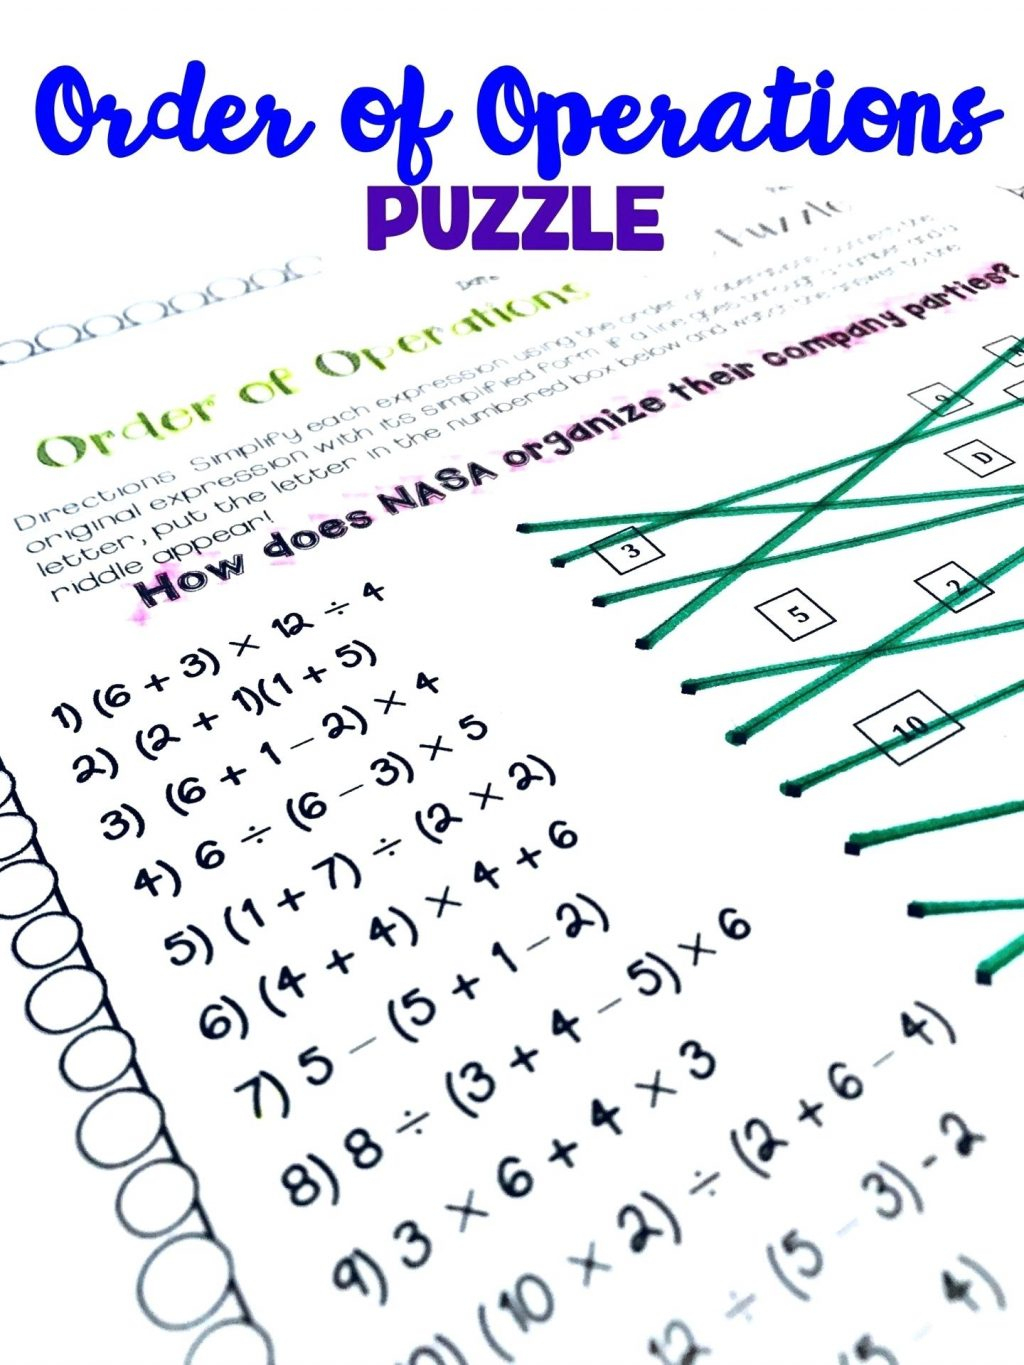 Maths Puzzles Worksheets Fun Math High School Pdf 6Th Grade Ks3 For - Printable Math Puzzles Pdf